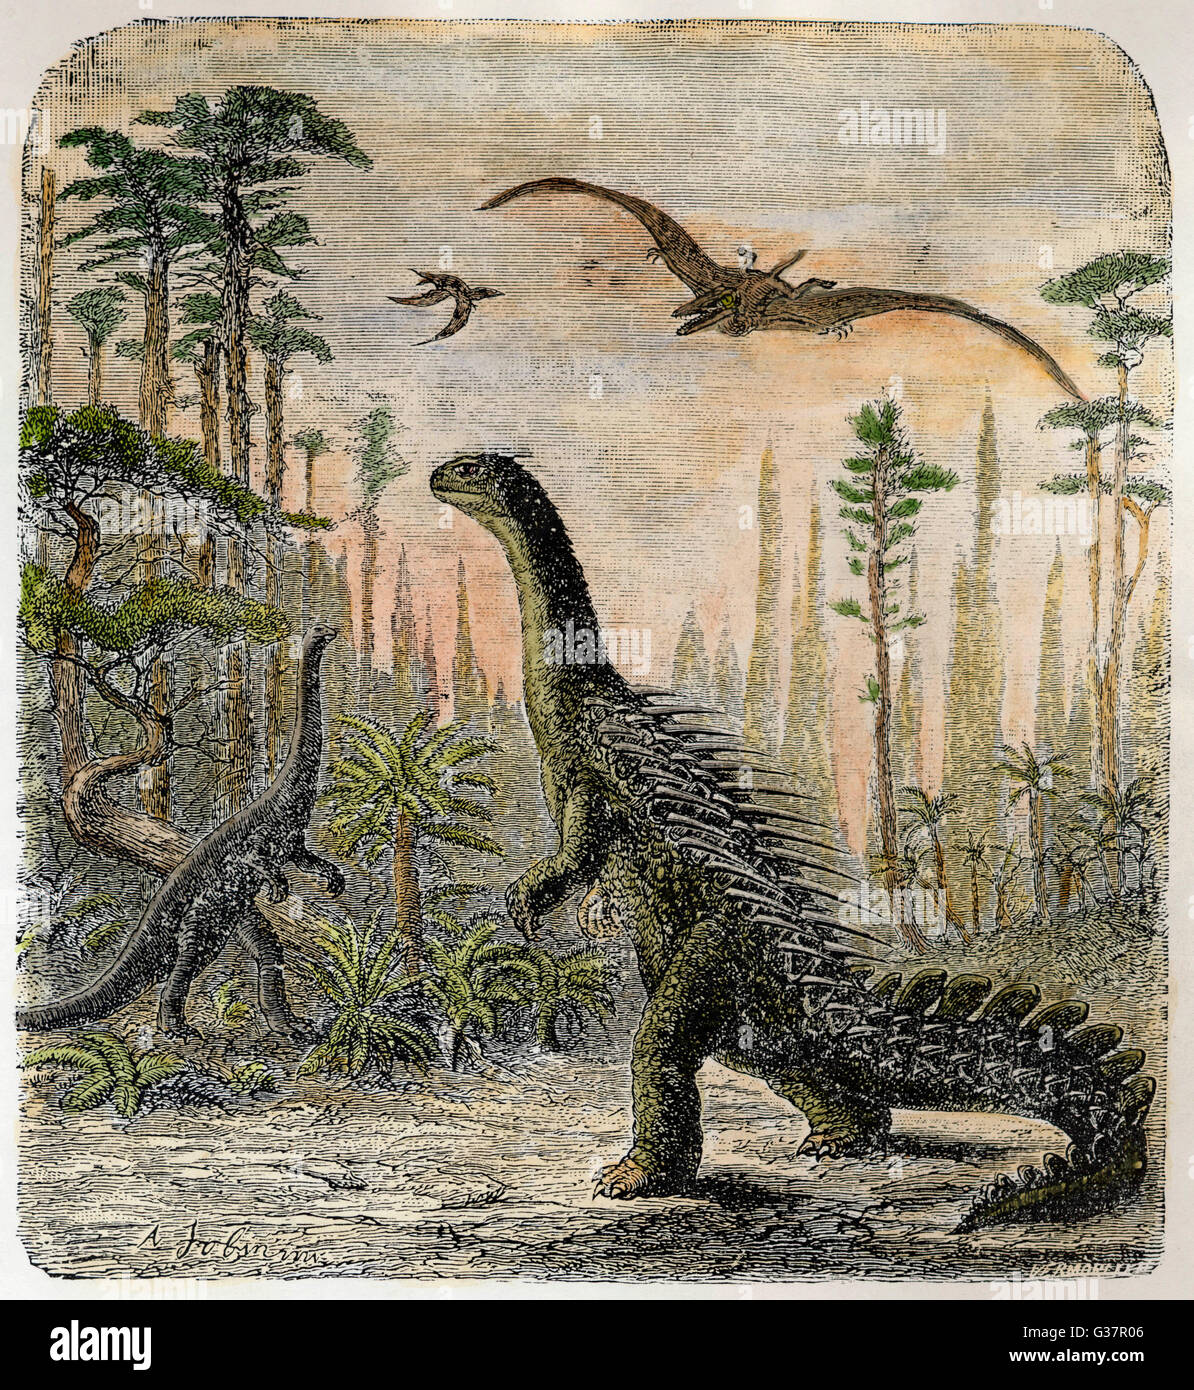 Dinosaurs of the Jurassic  period : a Stegosaurus, with a  Compsognathus in the  background - Stock Image